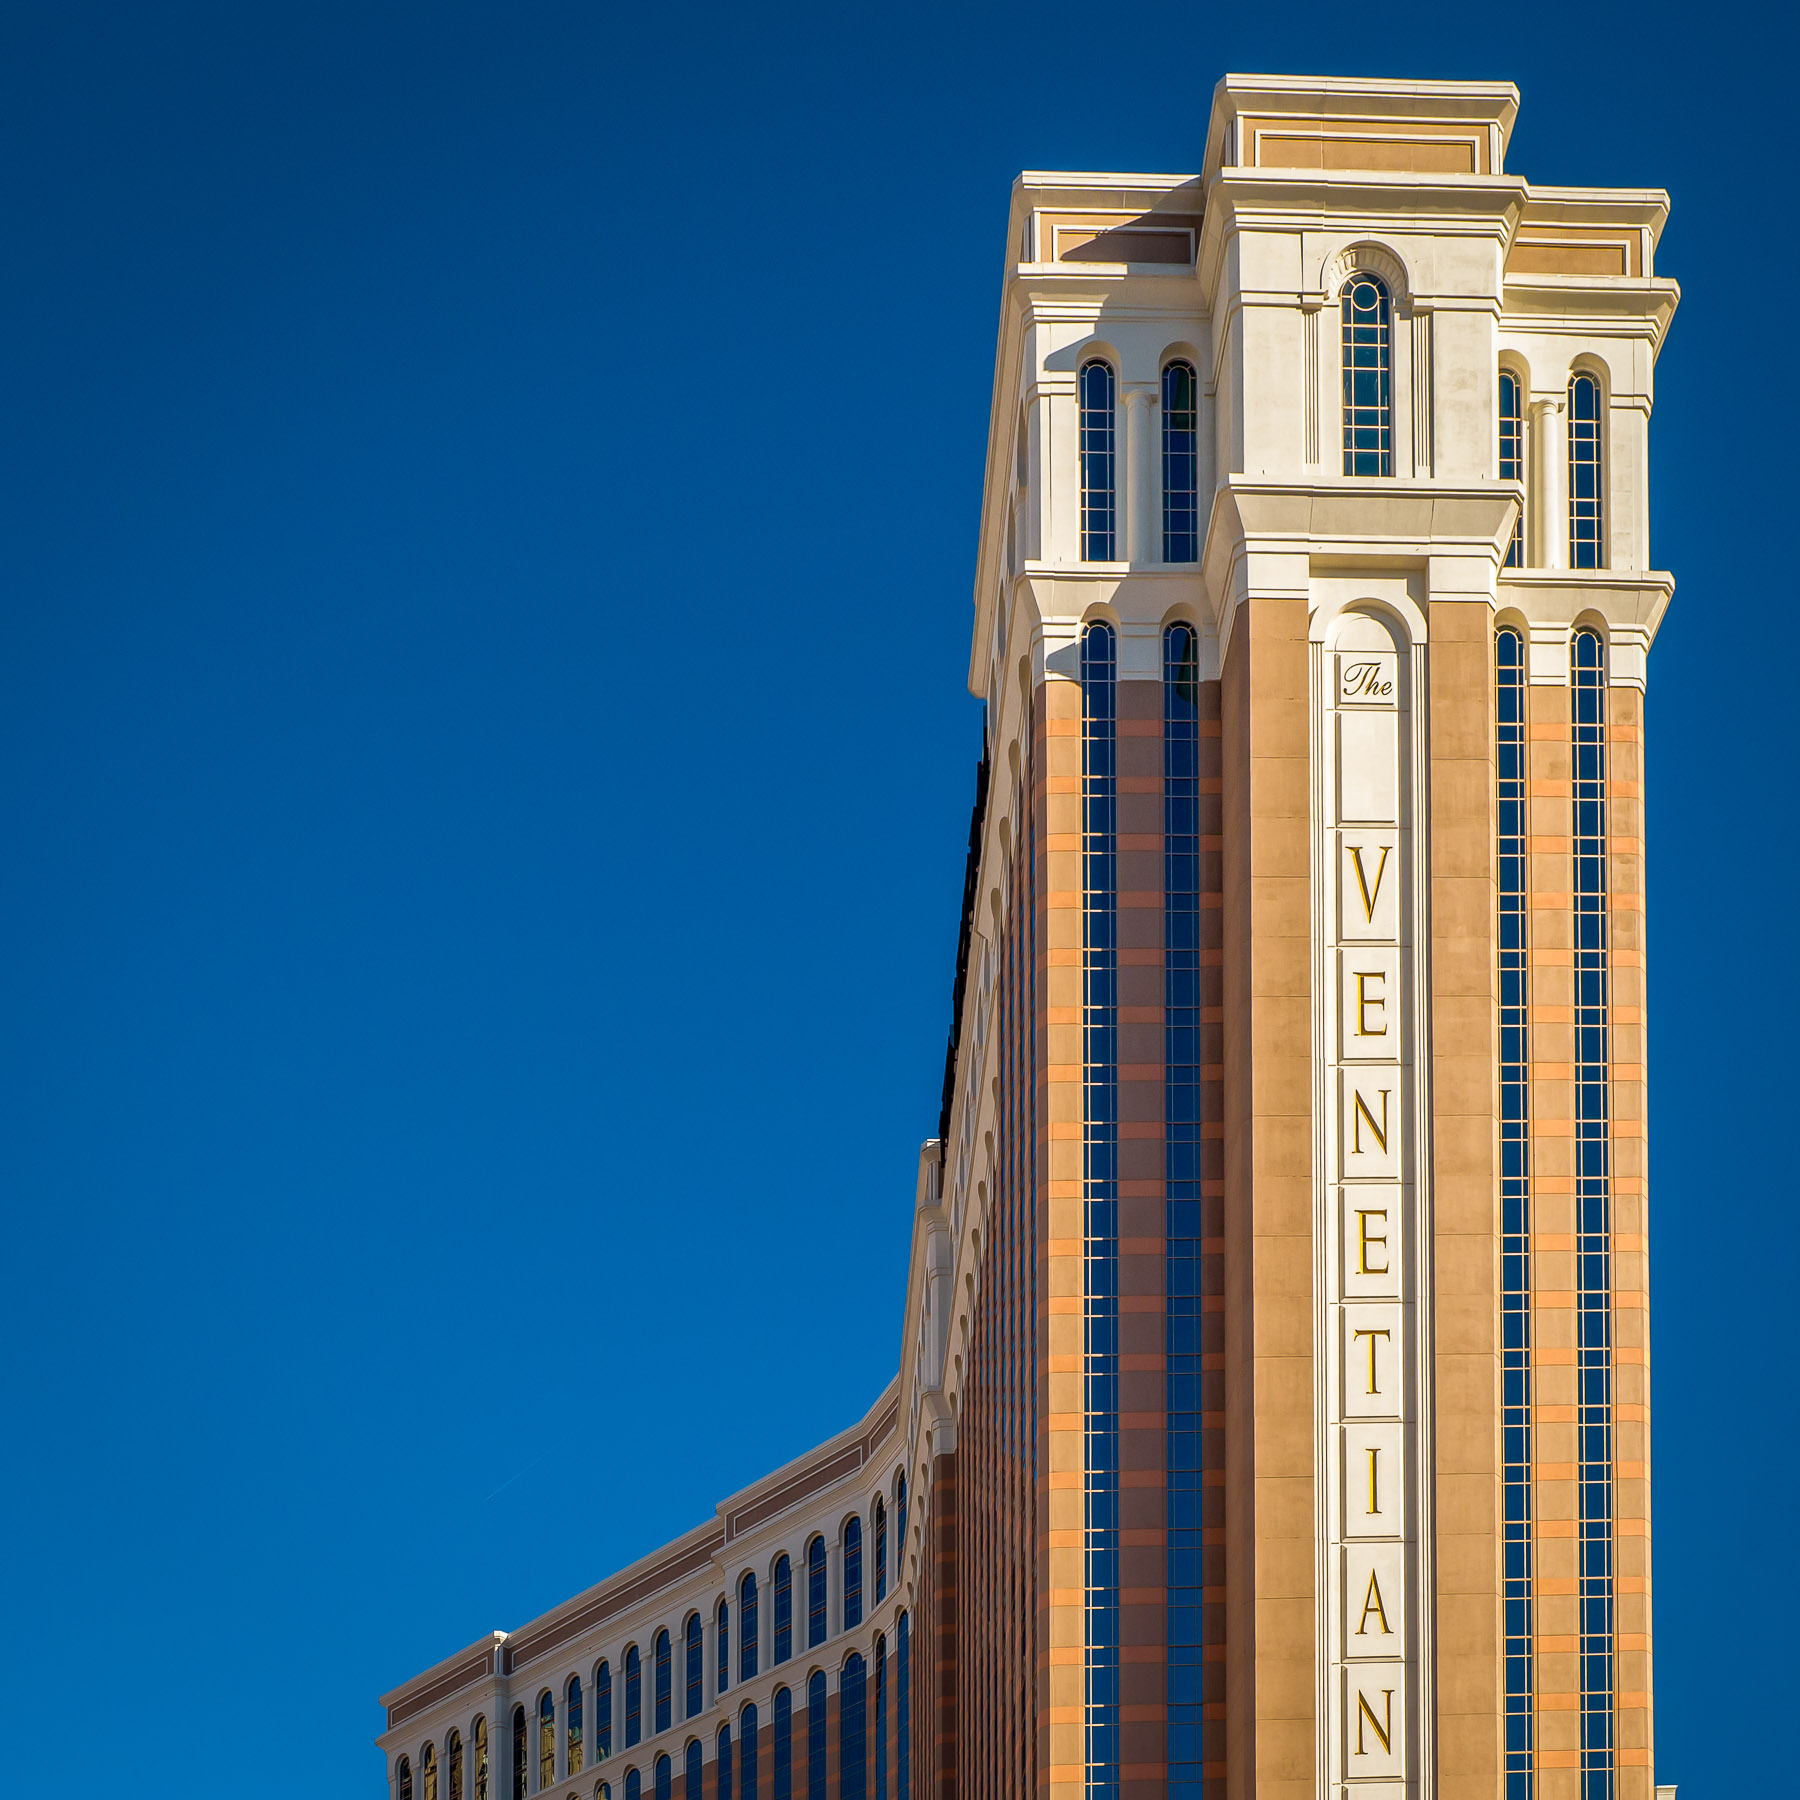 The main tower of The Venetian rises into the clear blue sky over Las Vegas.